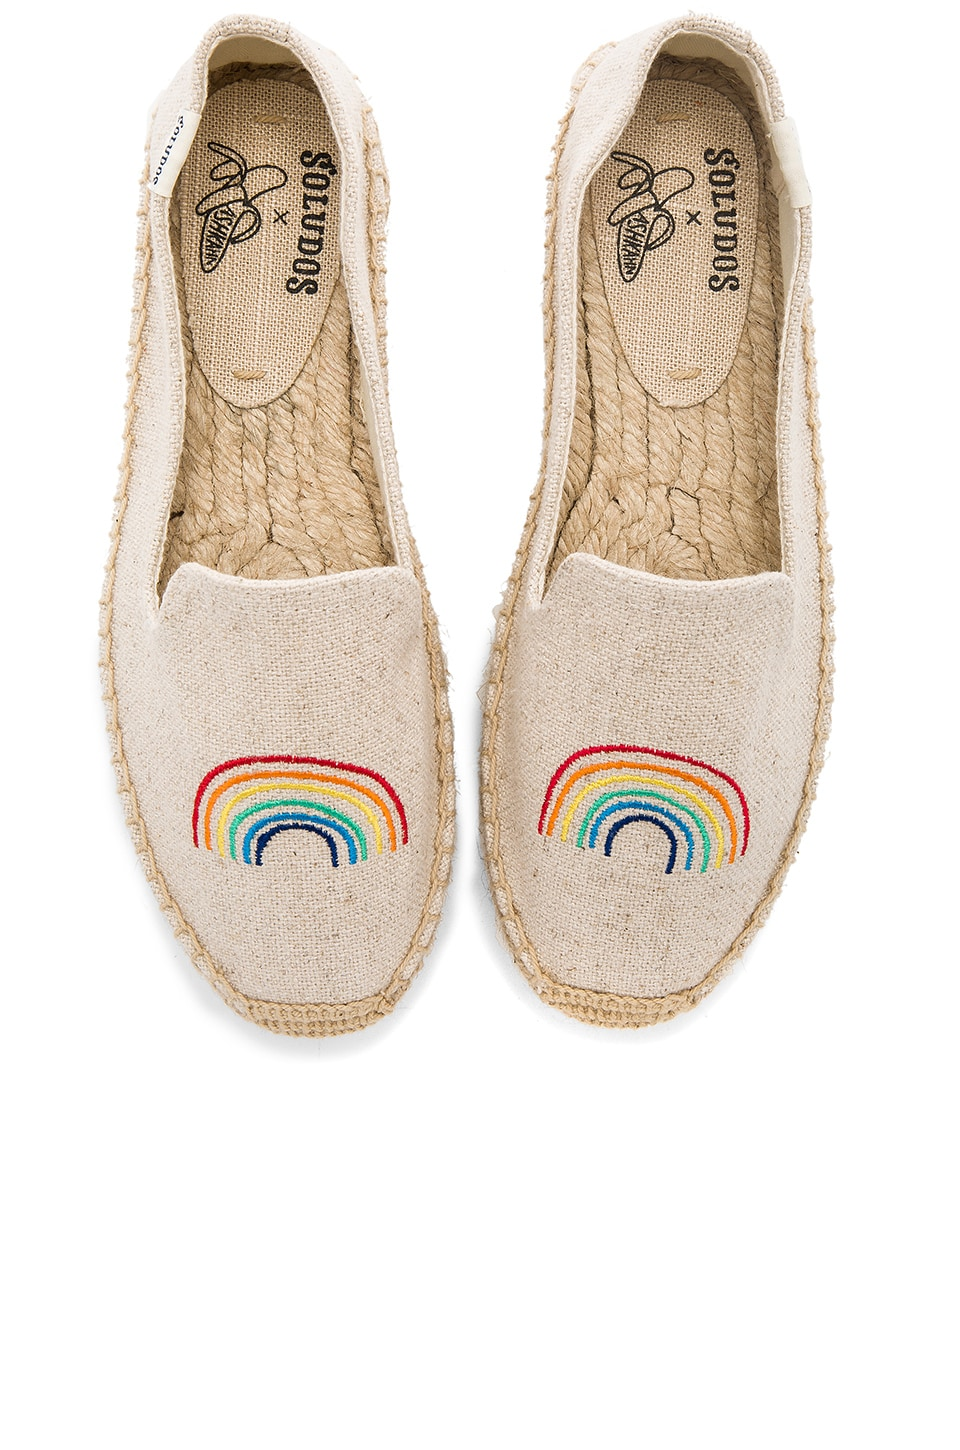 Soludos x Ashkahn Rainbow Platform Smoking Slipper in Sand